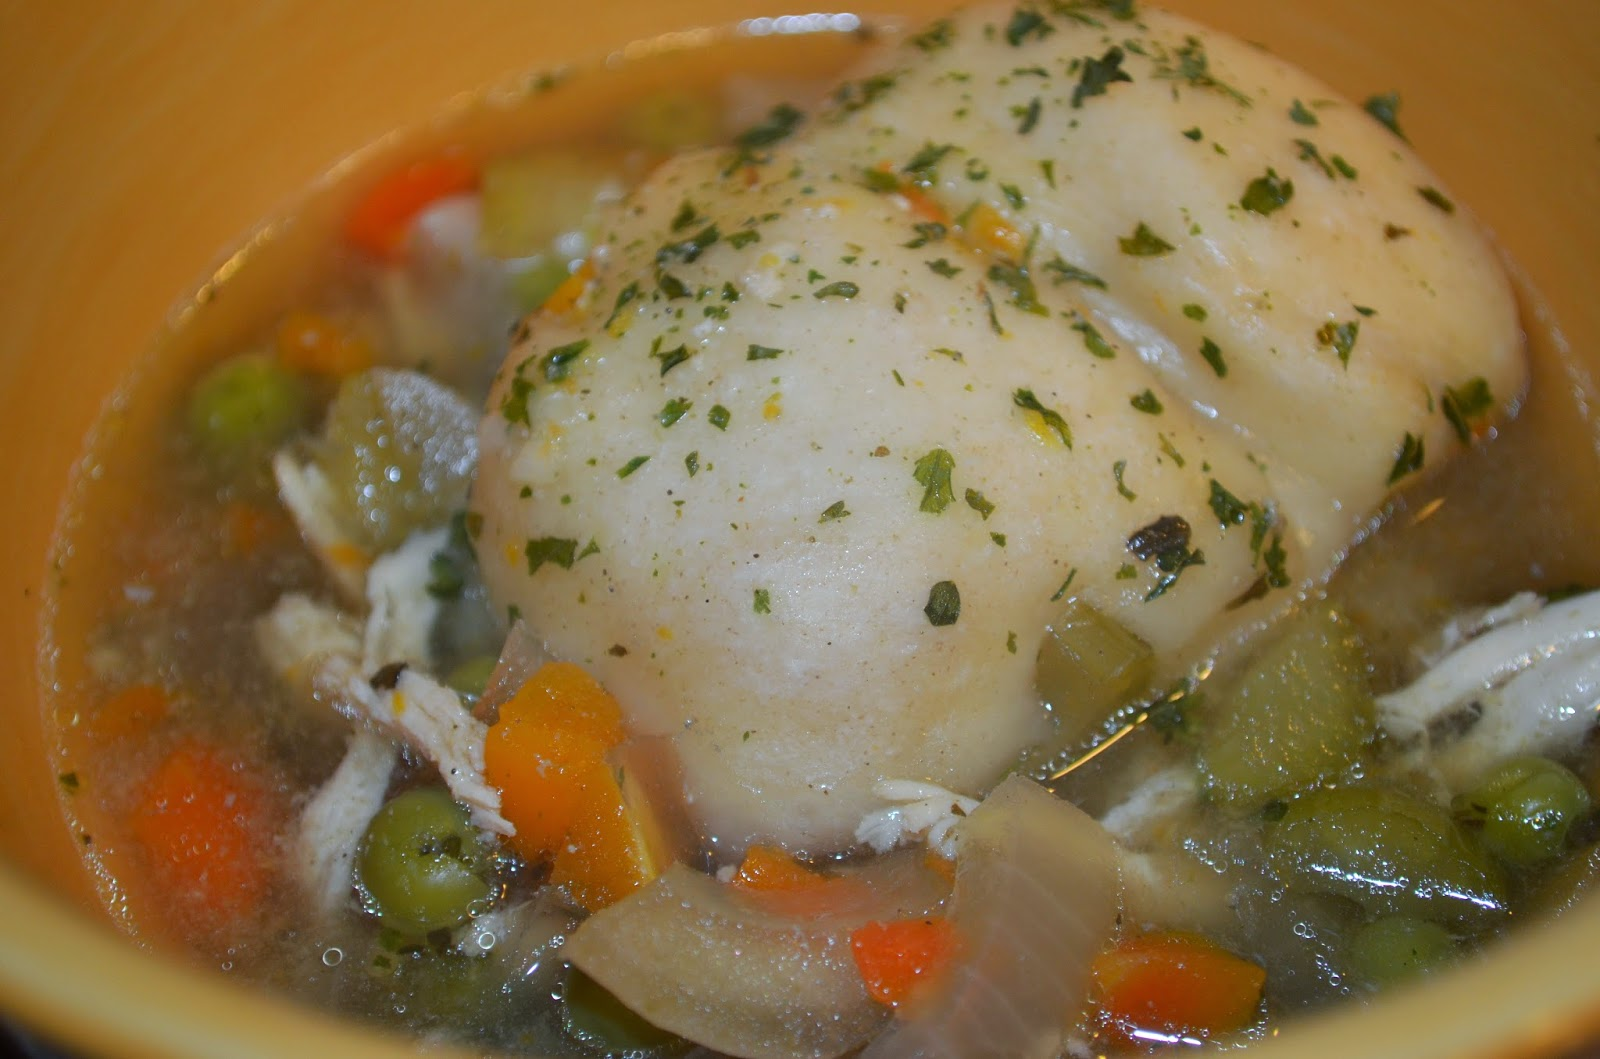 Erin Traill, Diamond Beachbody Coach, chicken and dumplings, healthy recipe, clean eating, soup, fit mom, fitness, quick healthy meal, crock pot recipe, comfort food made healthy